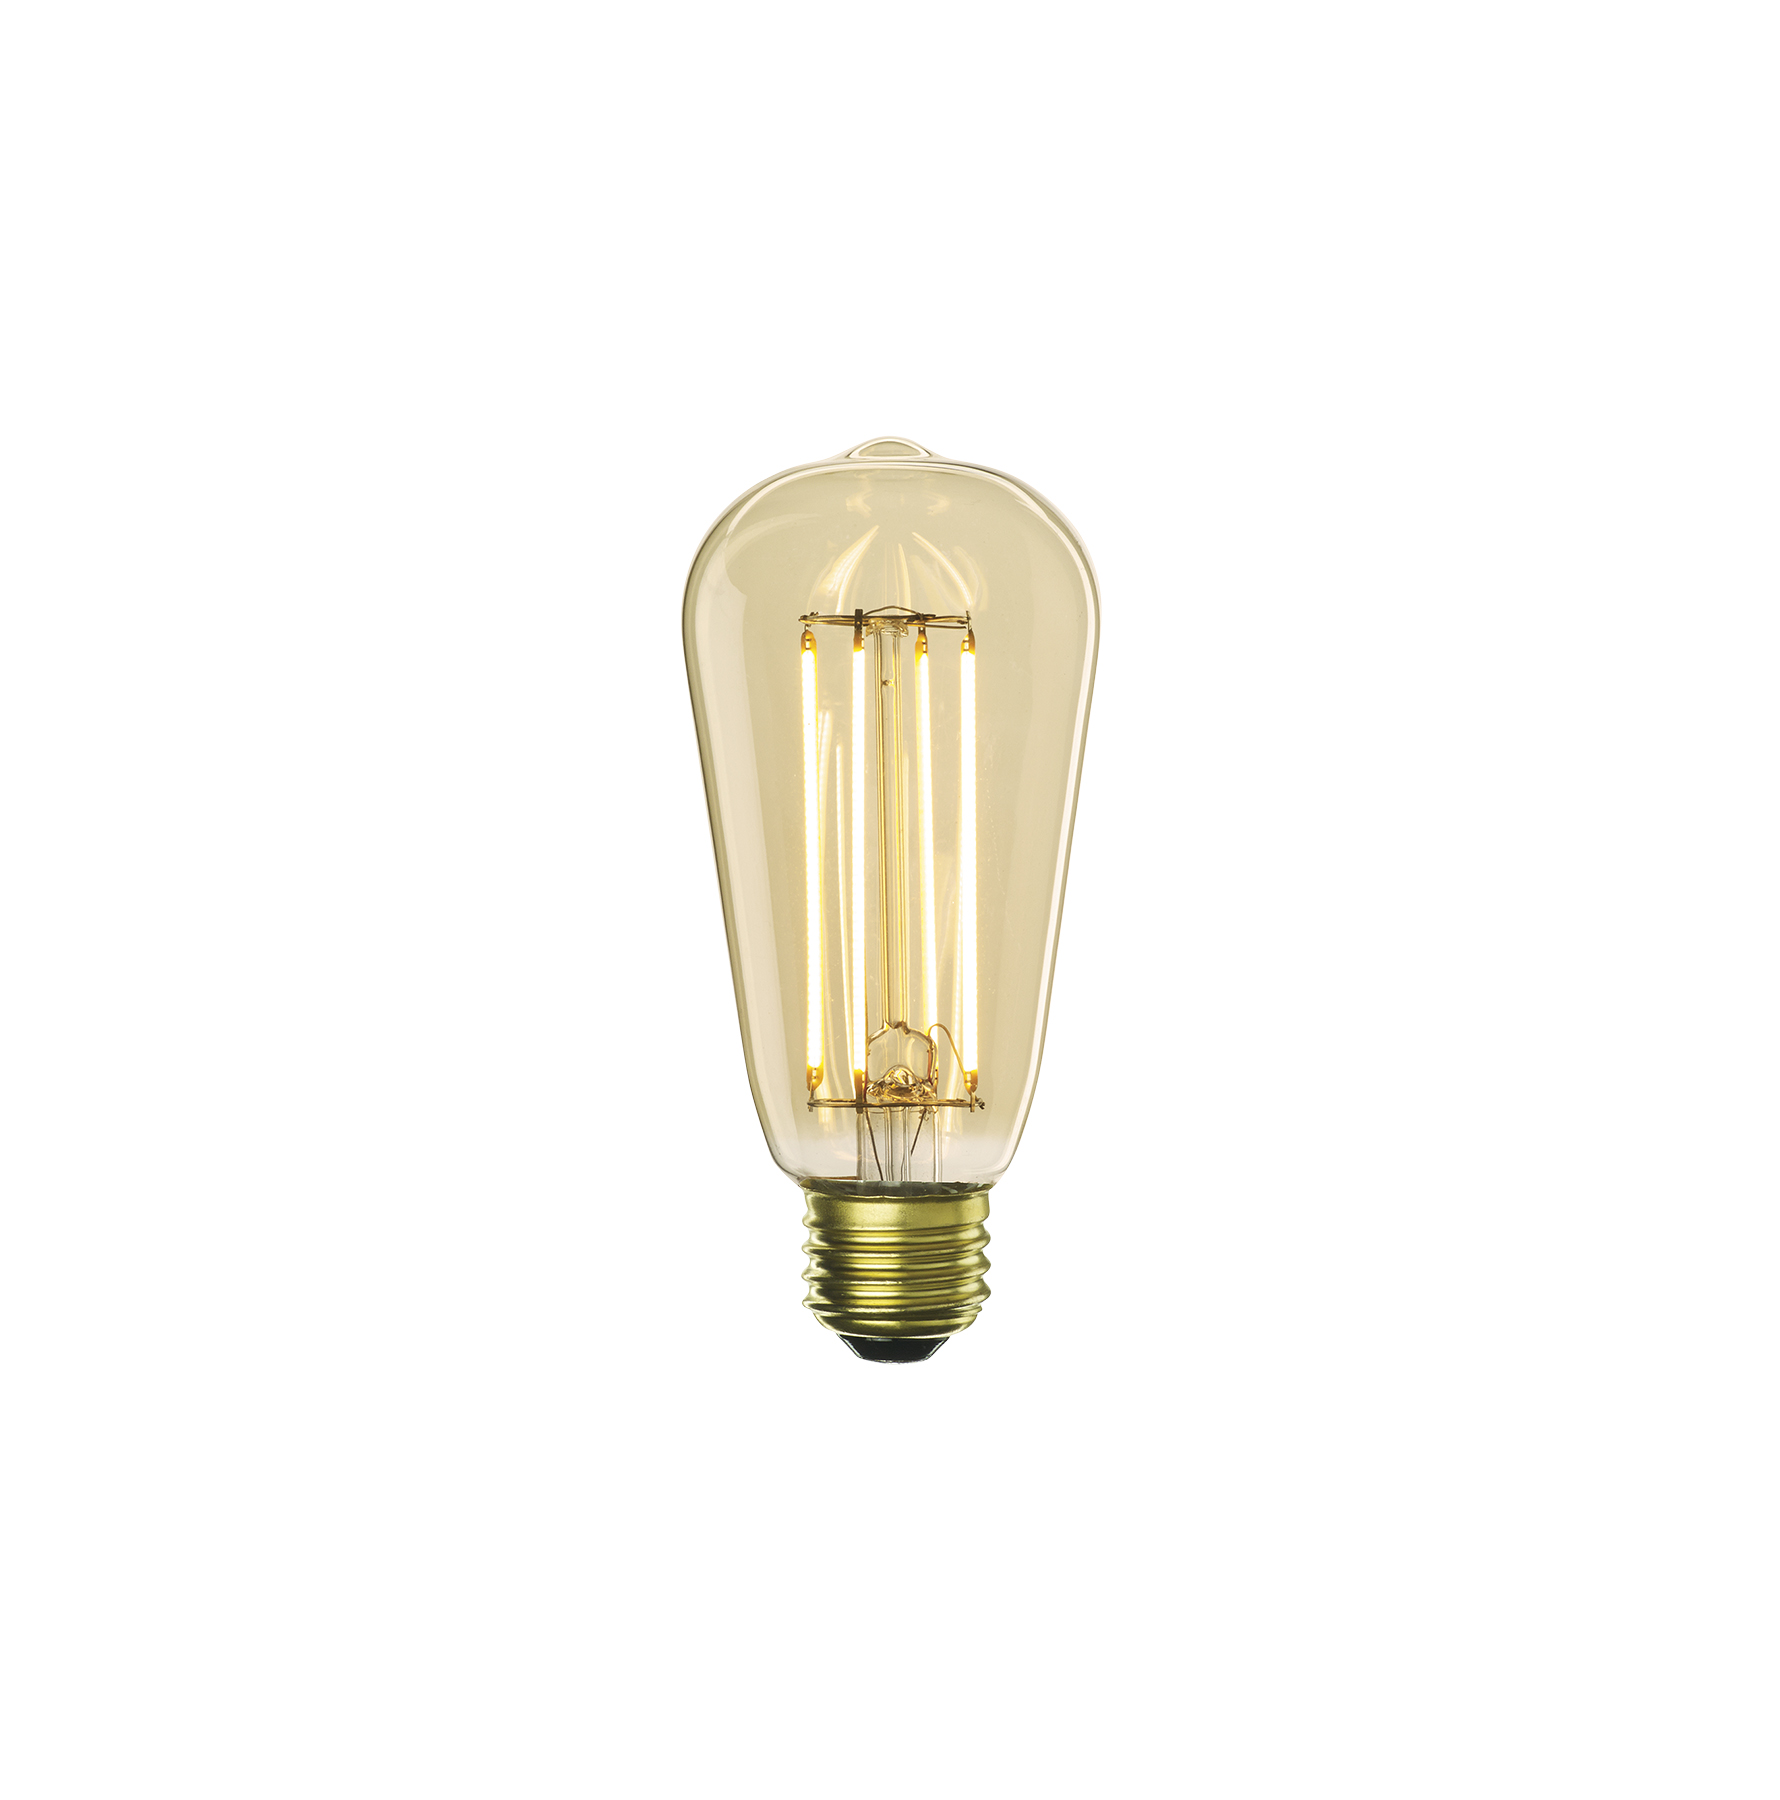 Bulbrite 776609 7W LED bulb